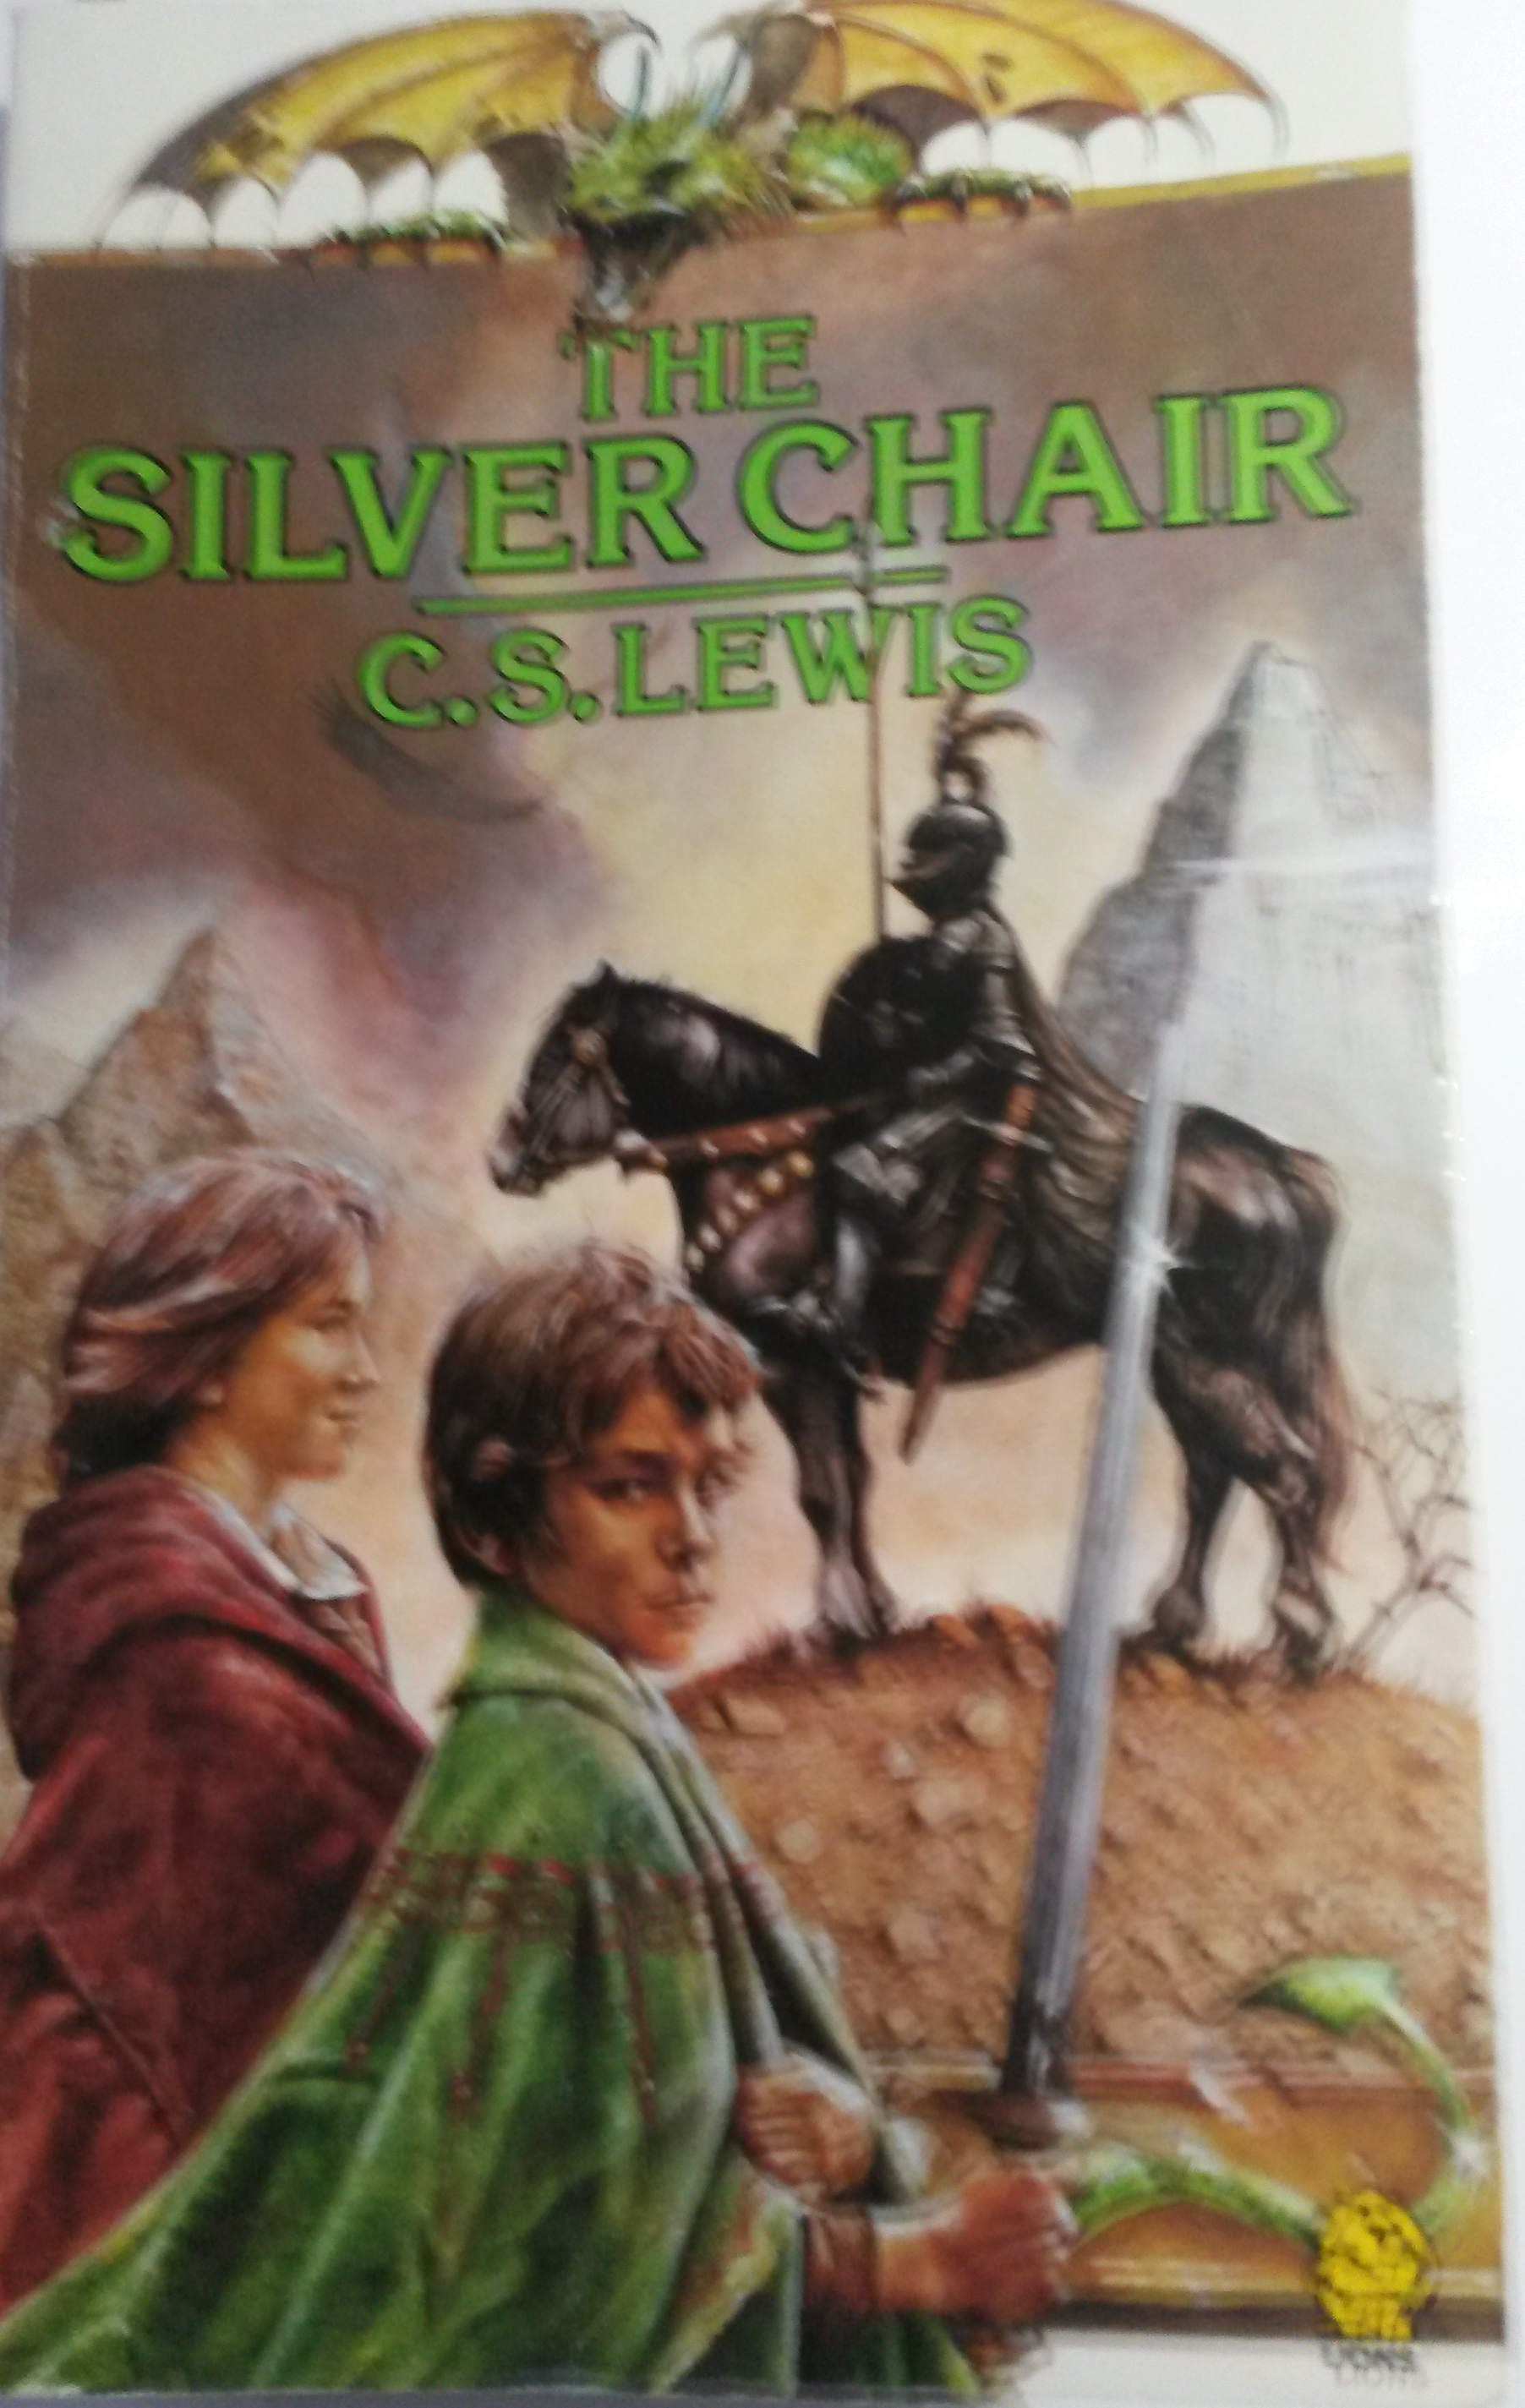 the silver chair movie 2015 ergonomic nsn october shudalandia i reached point where children were in harfang castle of gentle giants when they found out d just eaten a talking stag